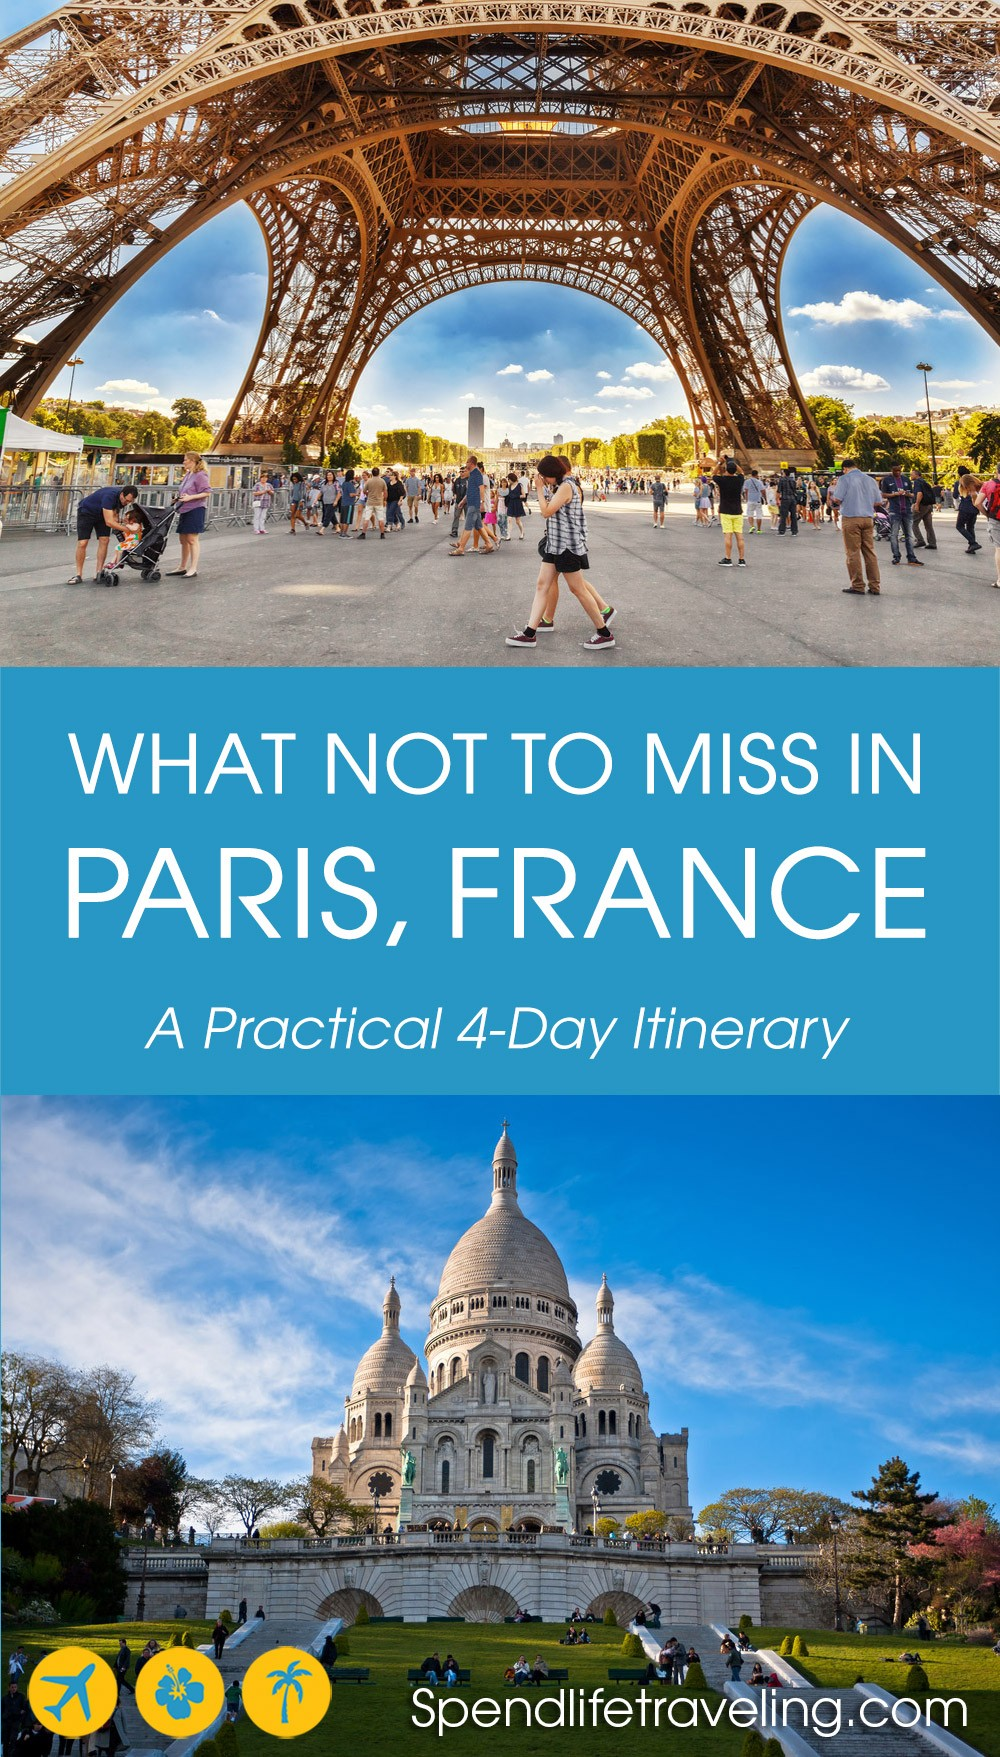 A practical itinerary for 4 days in #Paris: all of the Paris highlights you shouldn't miss. #visitParis #travelParis